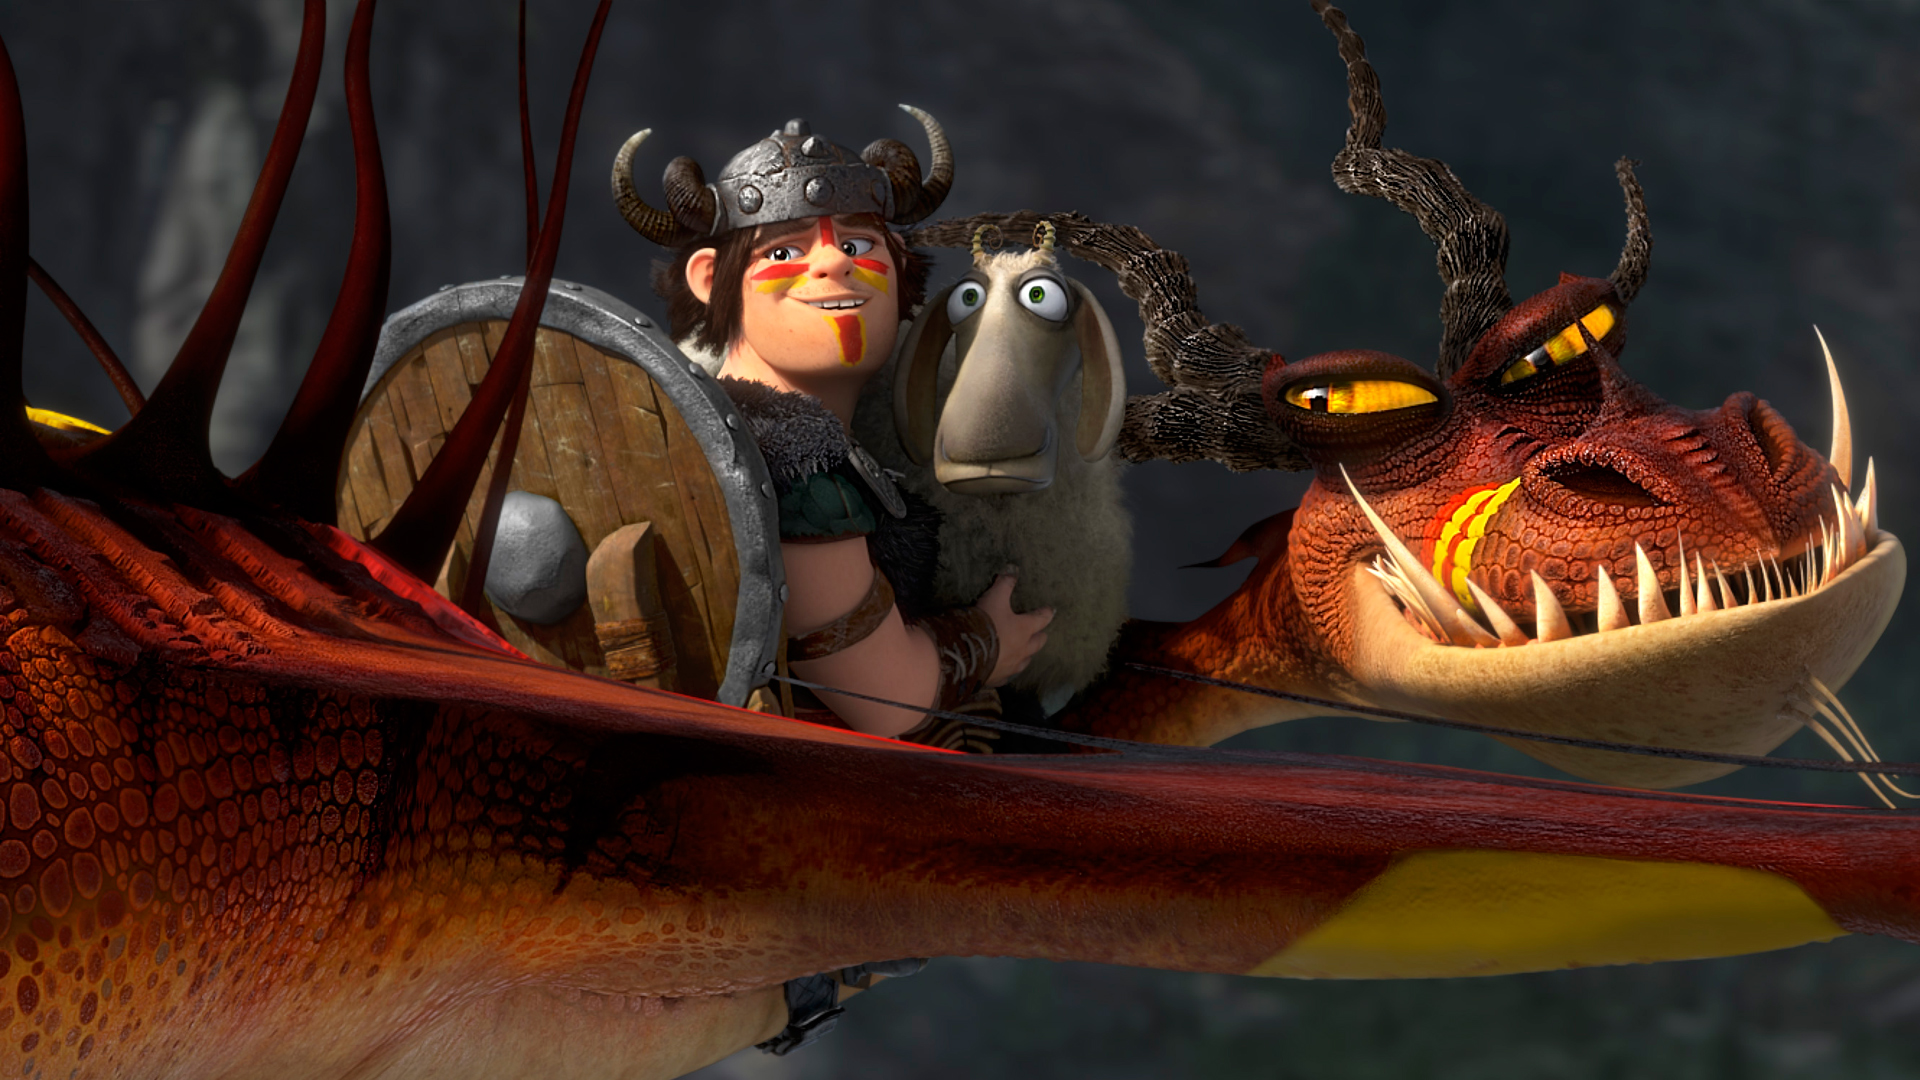 how to train your dragon 2 snotlout 0u wallpaper hd